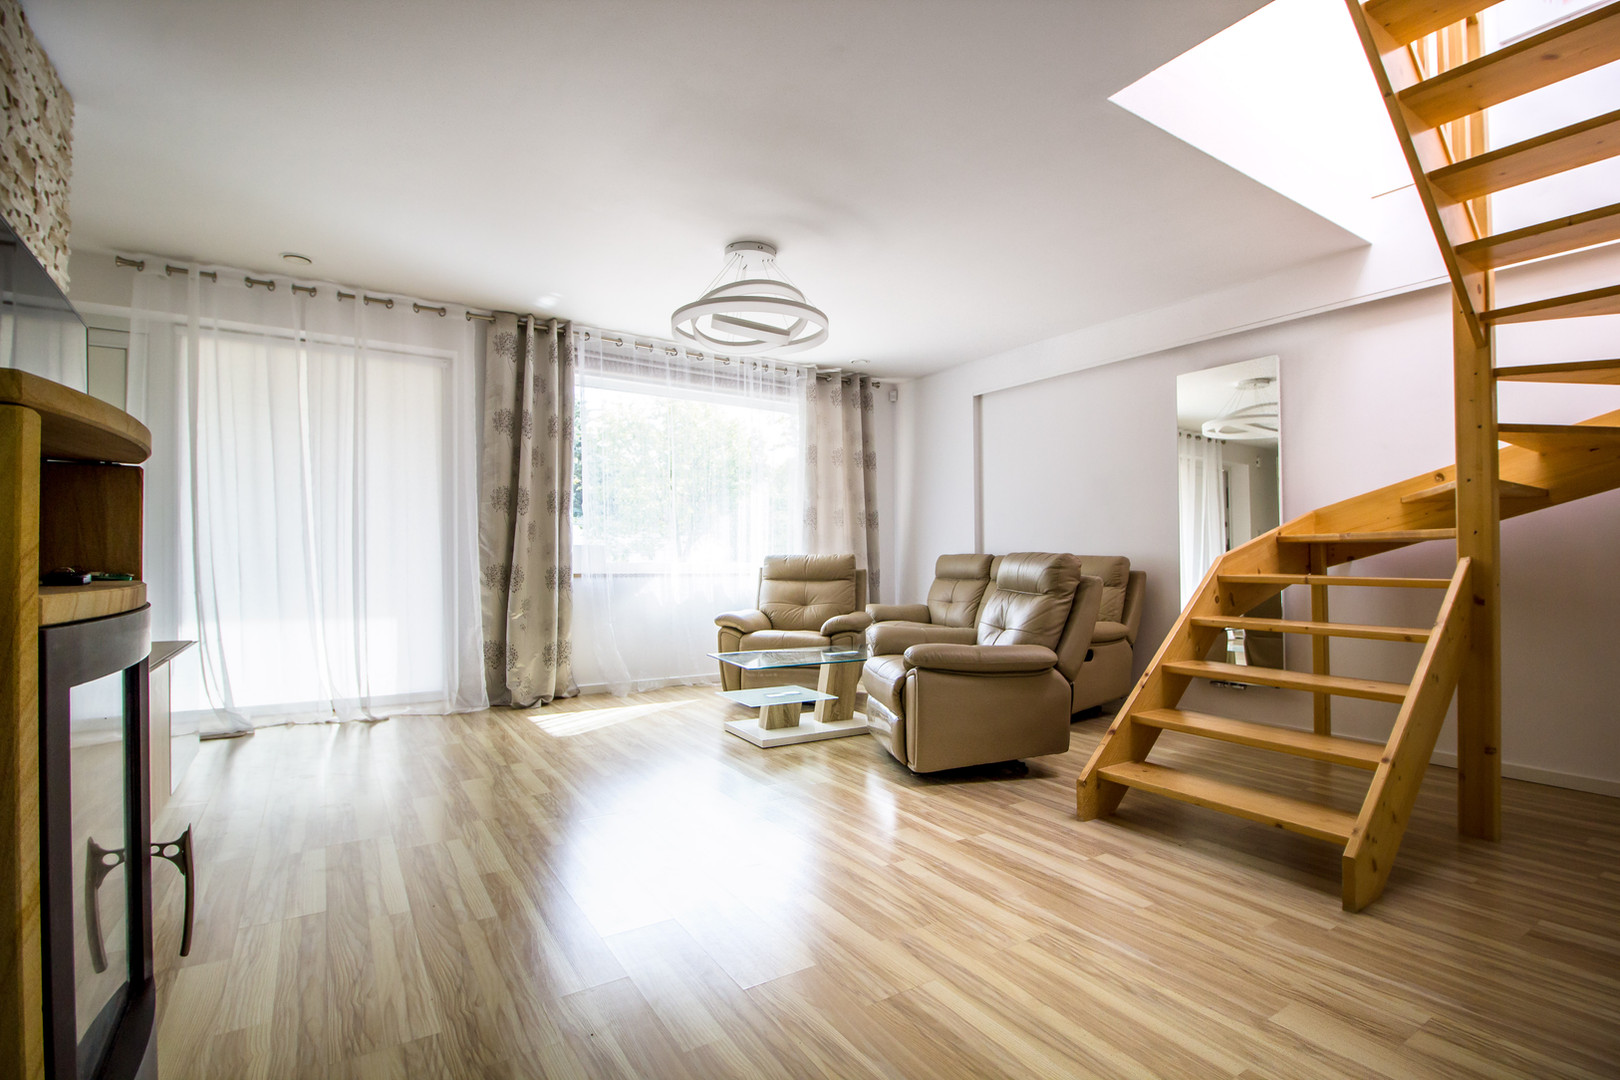 House for rent Poznan Poland (19 of 31).